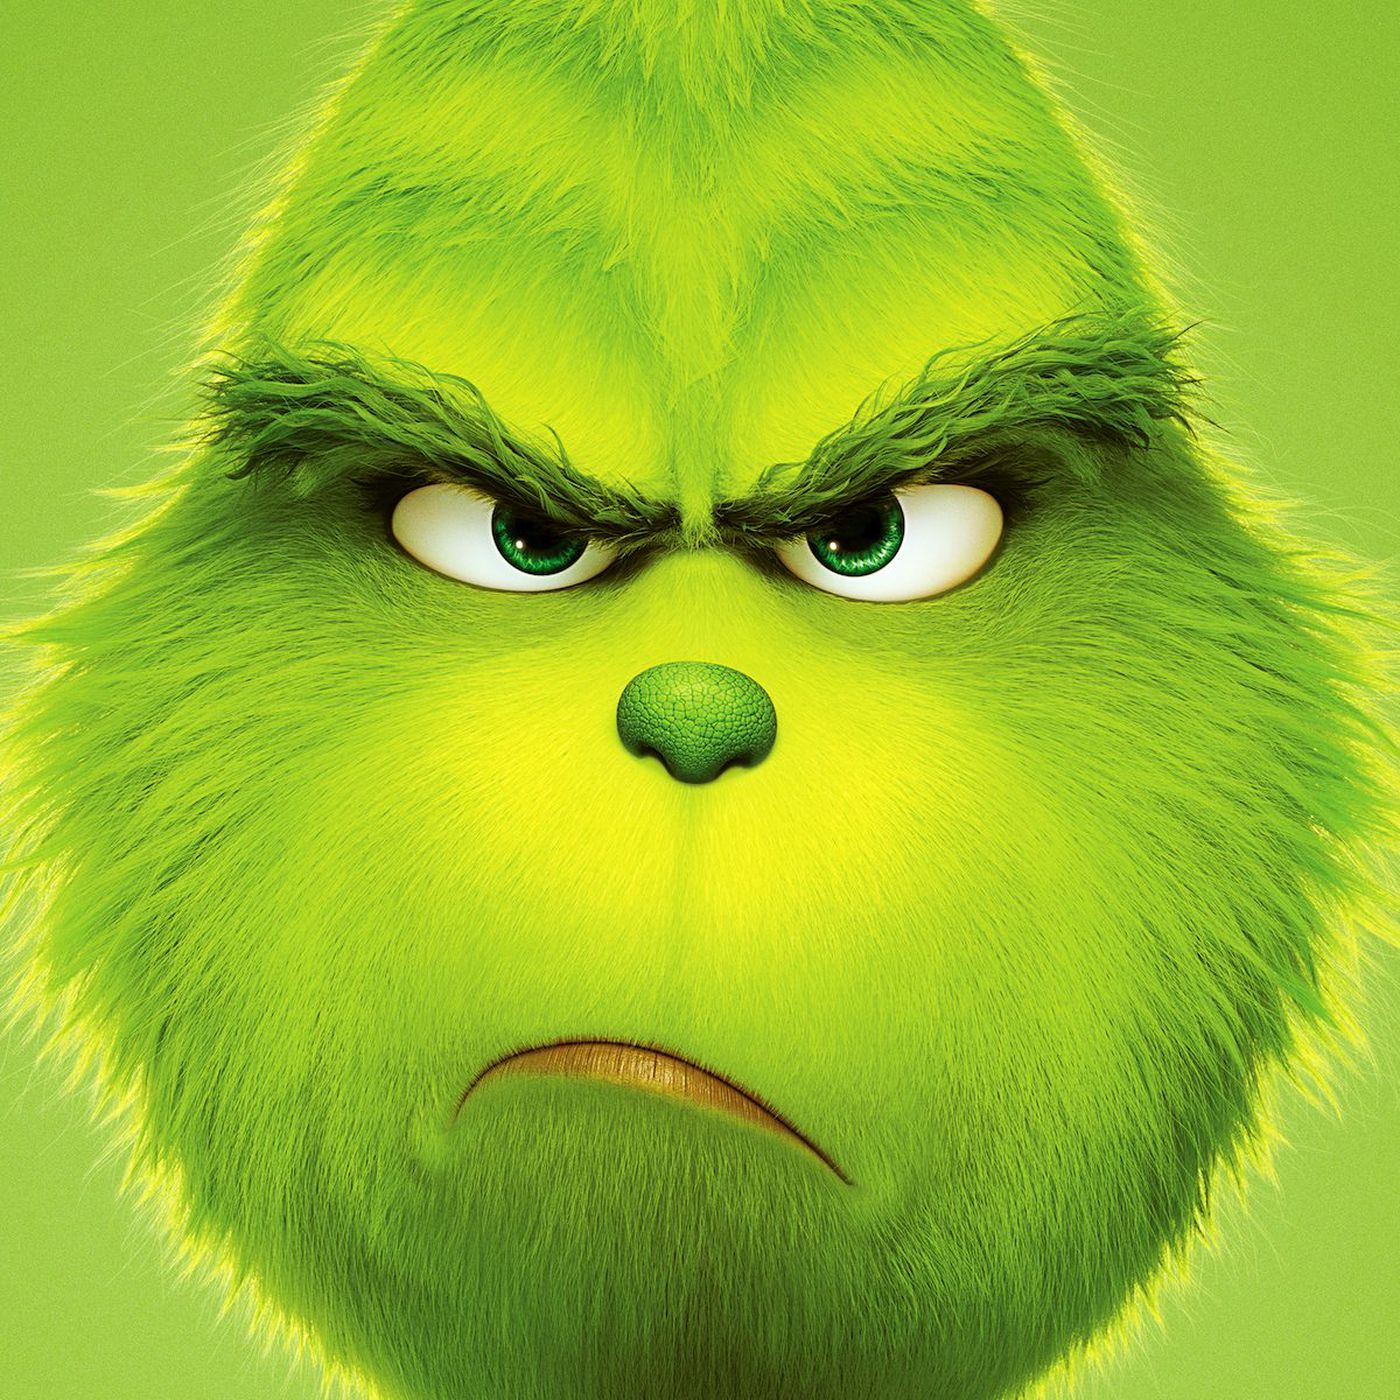 The Grinch review: Benedict Cumberbatch voices the character in a fun new version - Vox